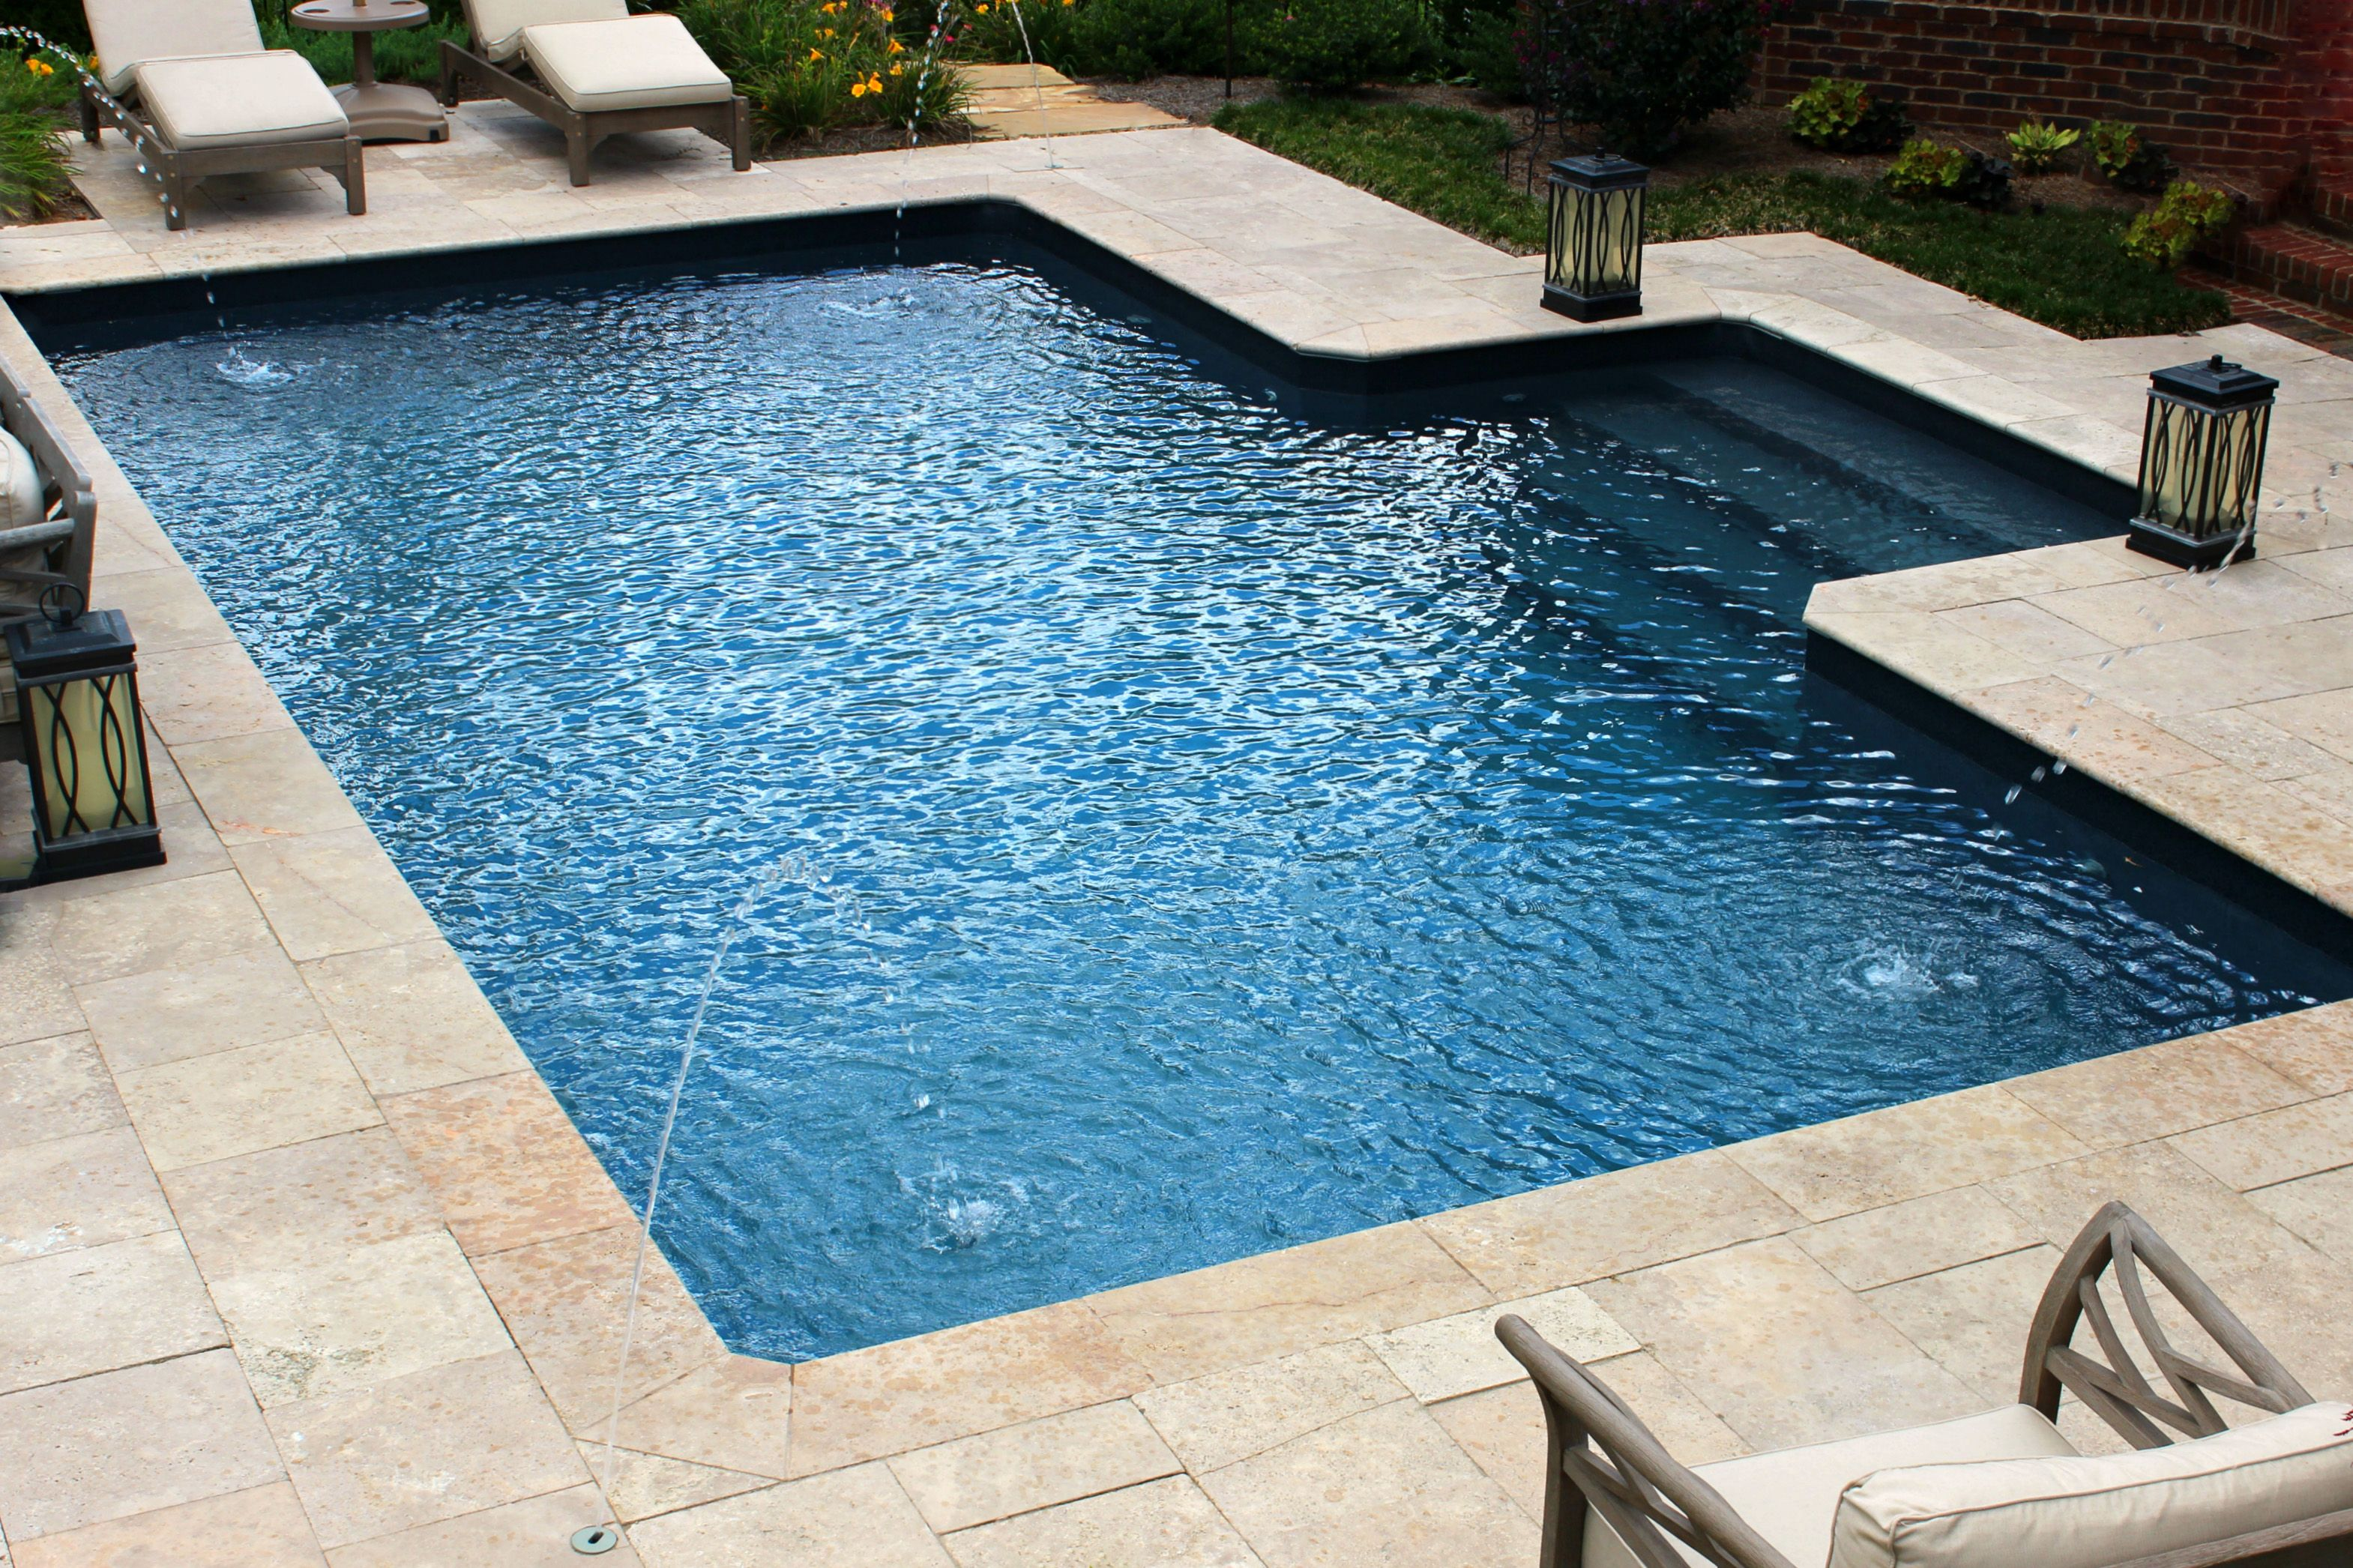 Deep blue, vinyl liner pool, simple design, stair entry, with deck ...